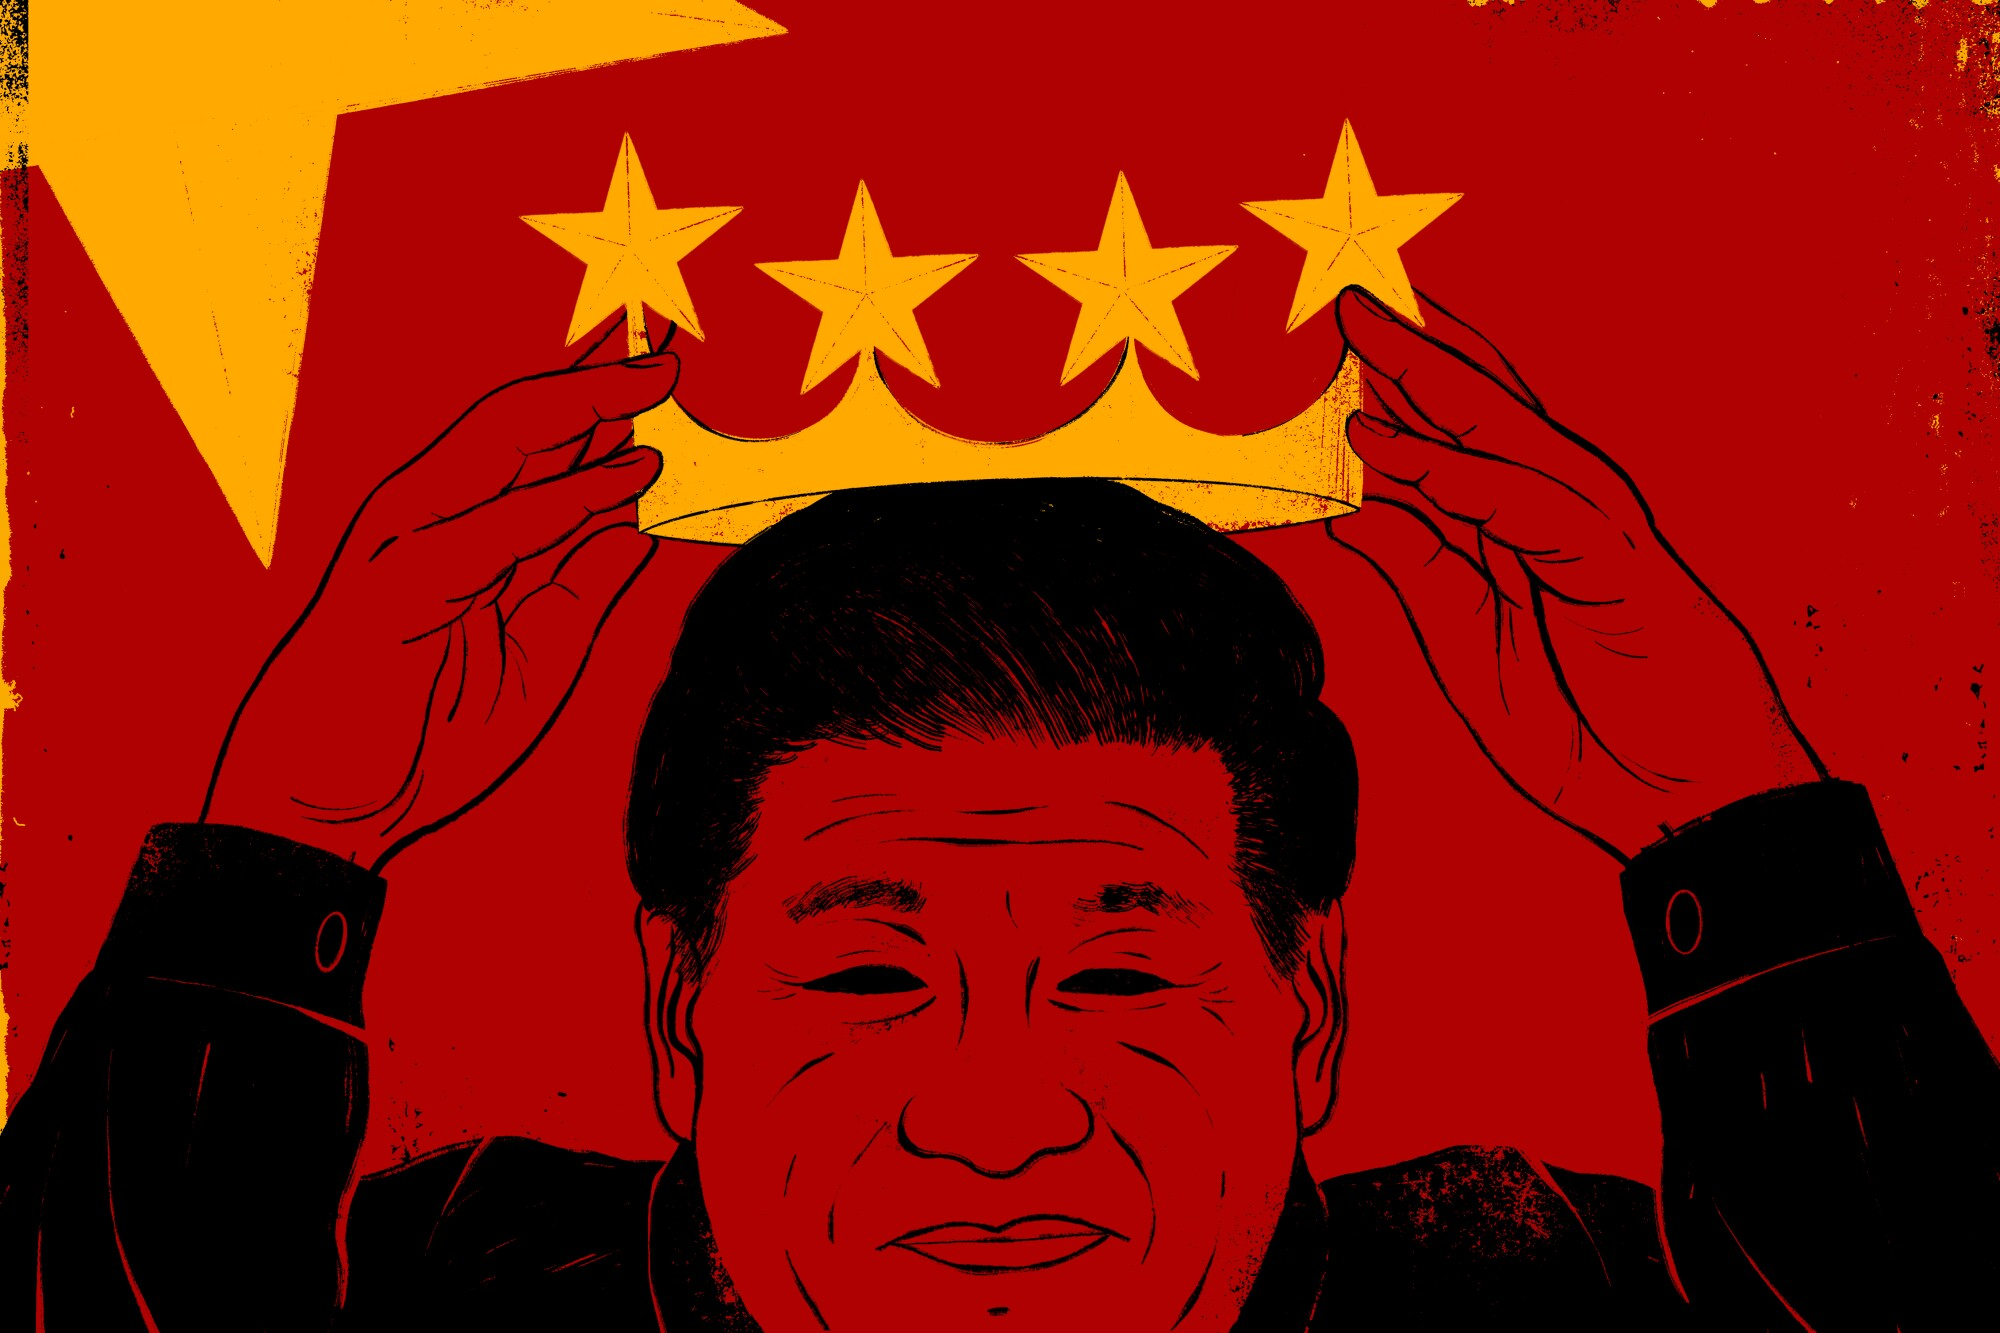 An illustration of Xi Jinping putting on a crown.